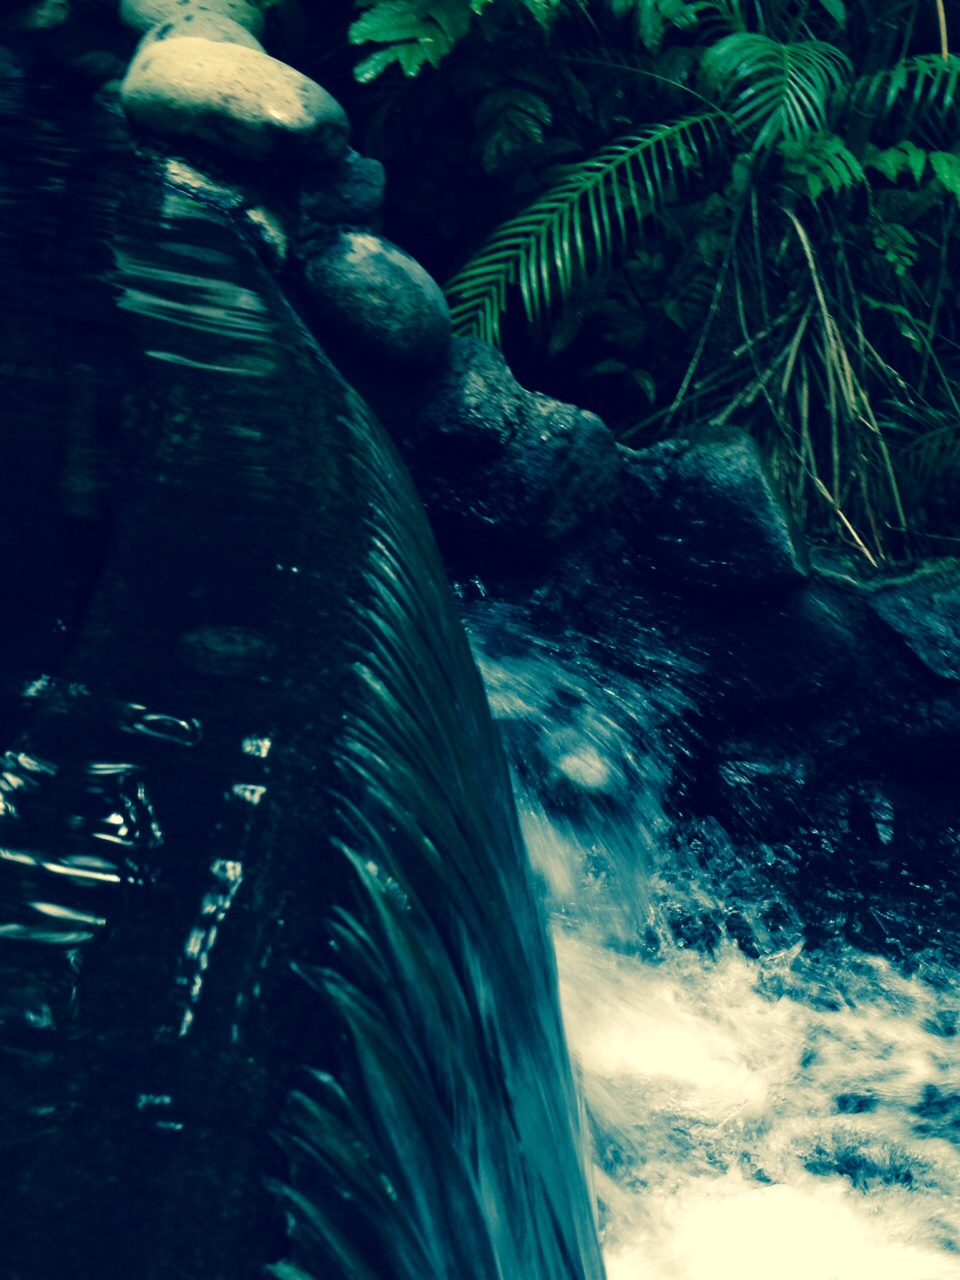 Hot Springs near the Arenal Volcano